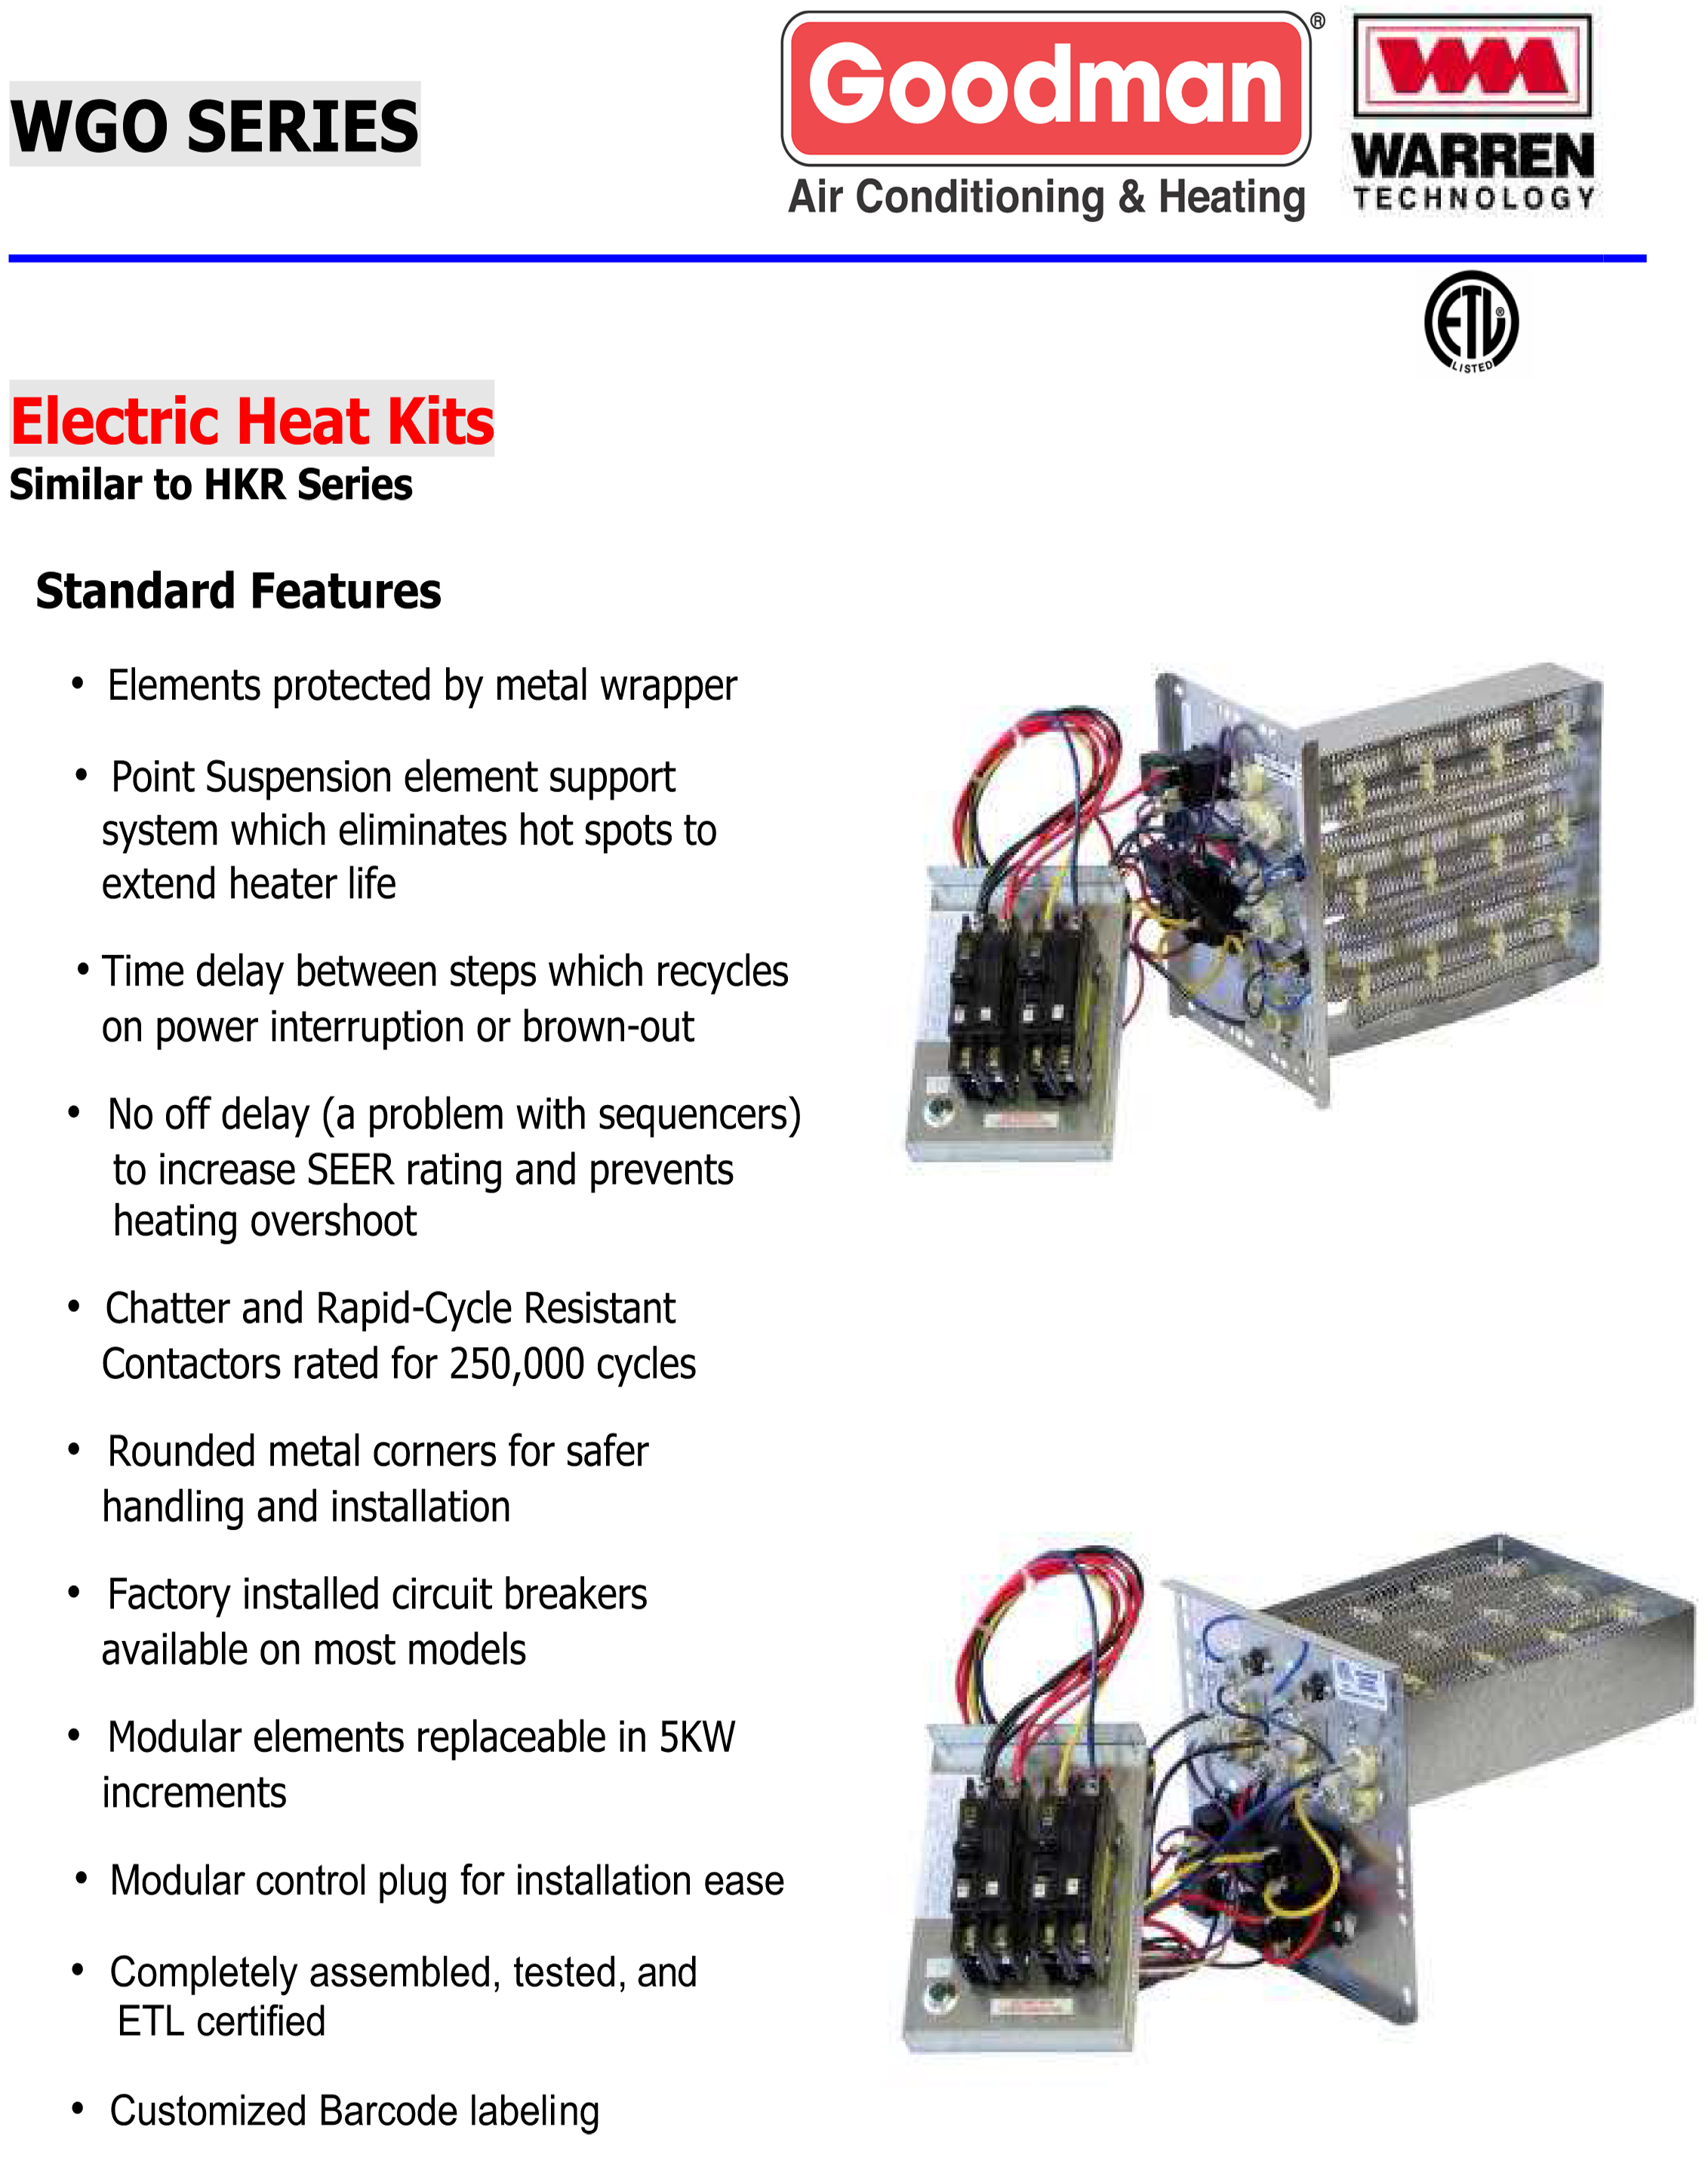 goodman wgo brochure 15 kw heat strip for goodman units ar, aer, adp, arp, aspf, aep goodman heat strip wiring diagram at nearapp.co